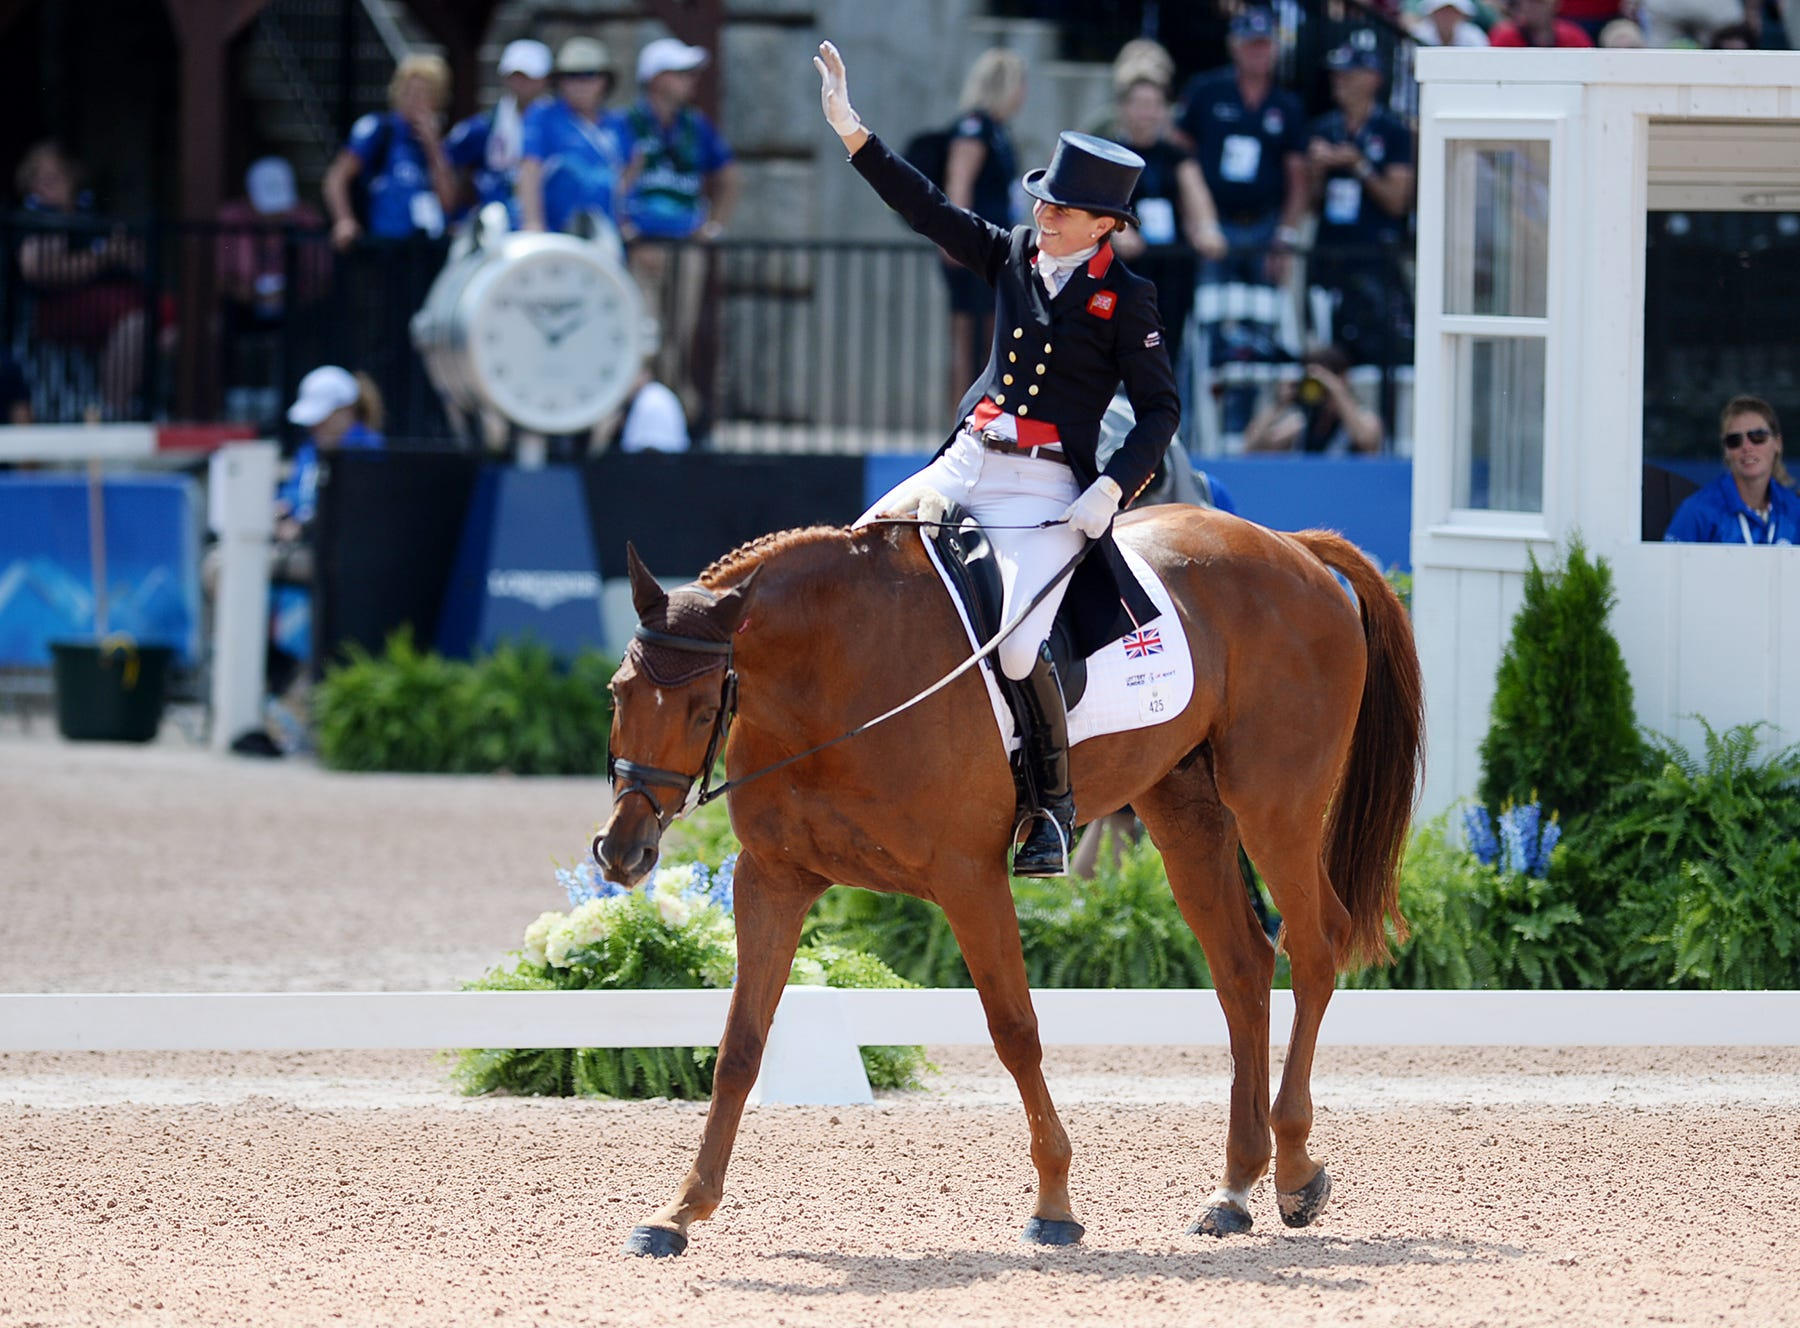 Great Britain's Piggy French waves to the cheering crowd as she rides Quarrycrest Echo following the dressage portion of the eventing competition at the World Equestrian Games in Tryon Sept. 13, 2018.